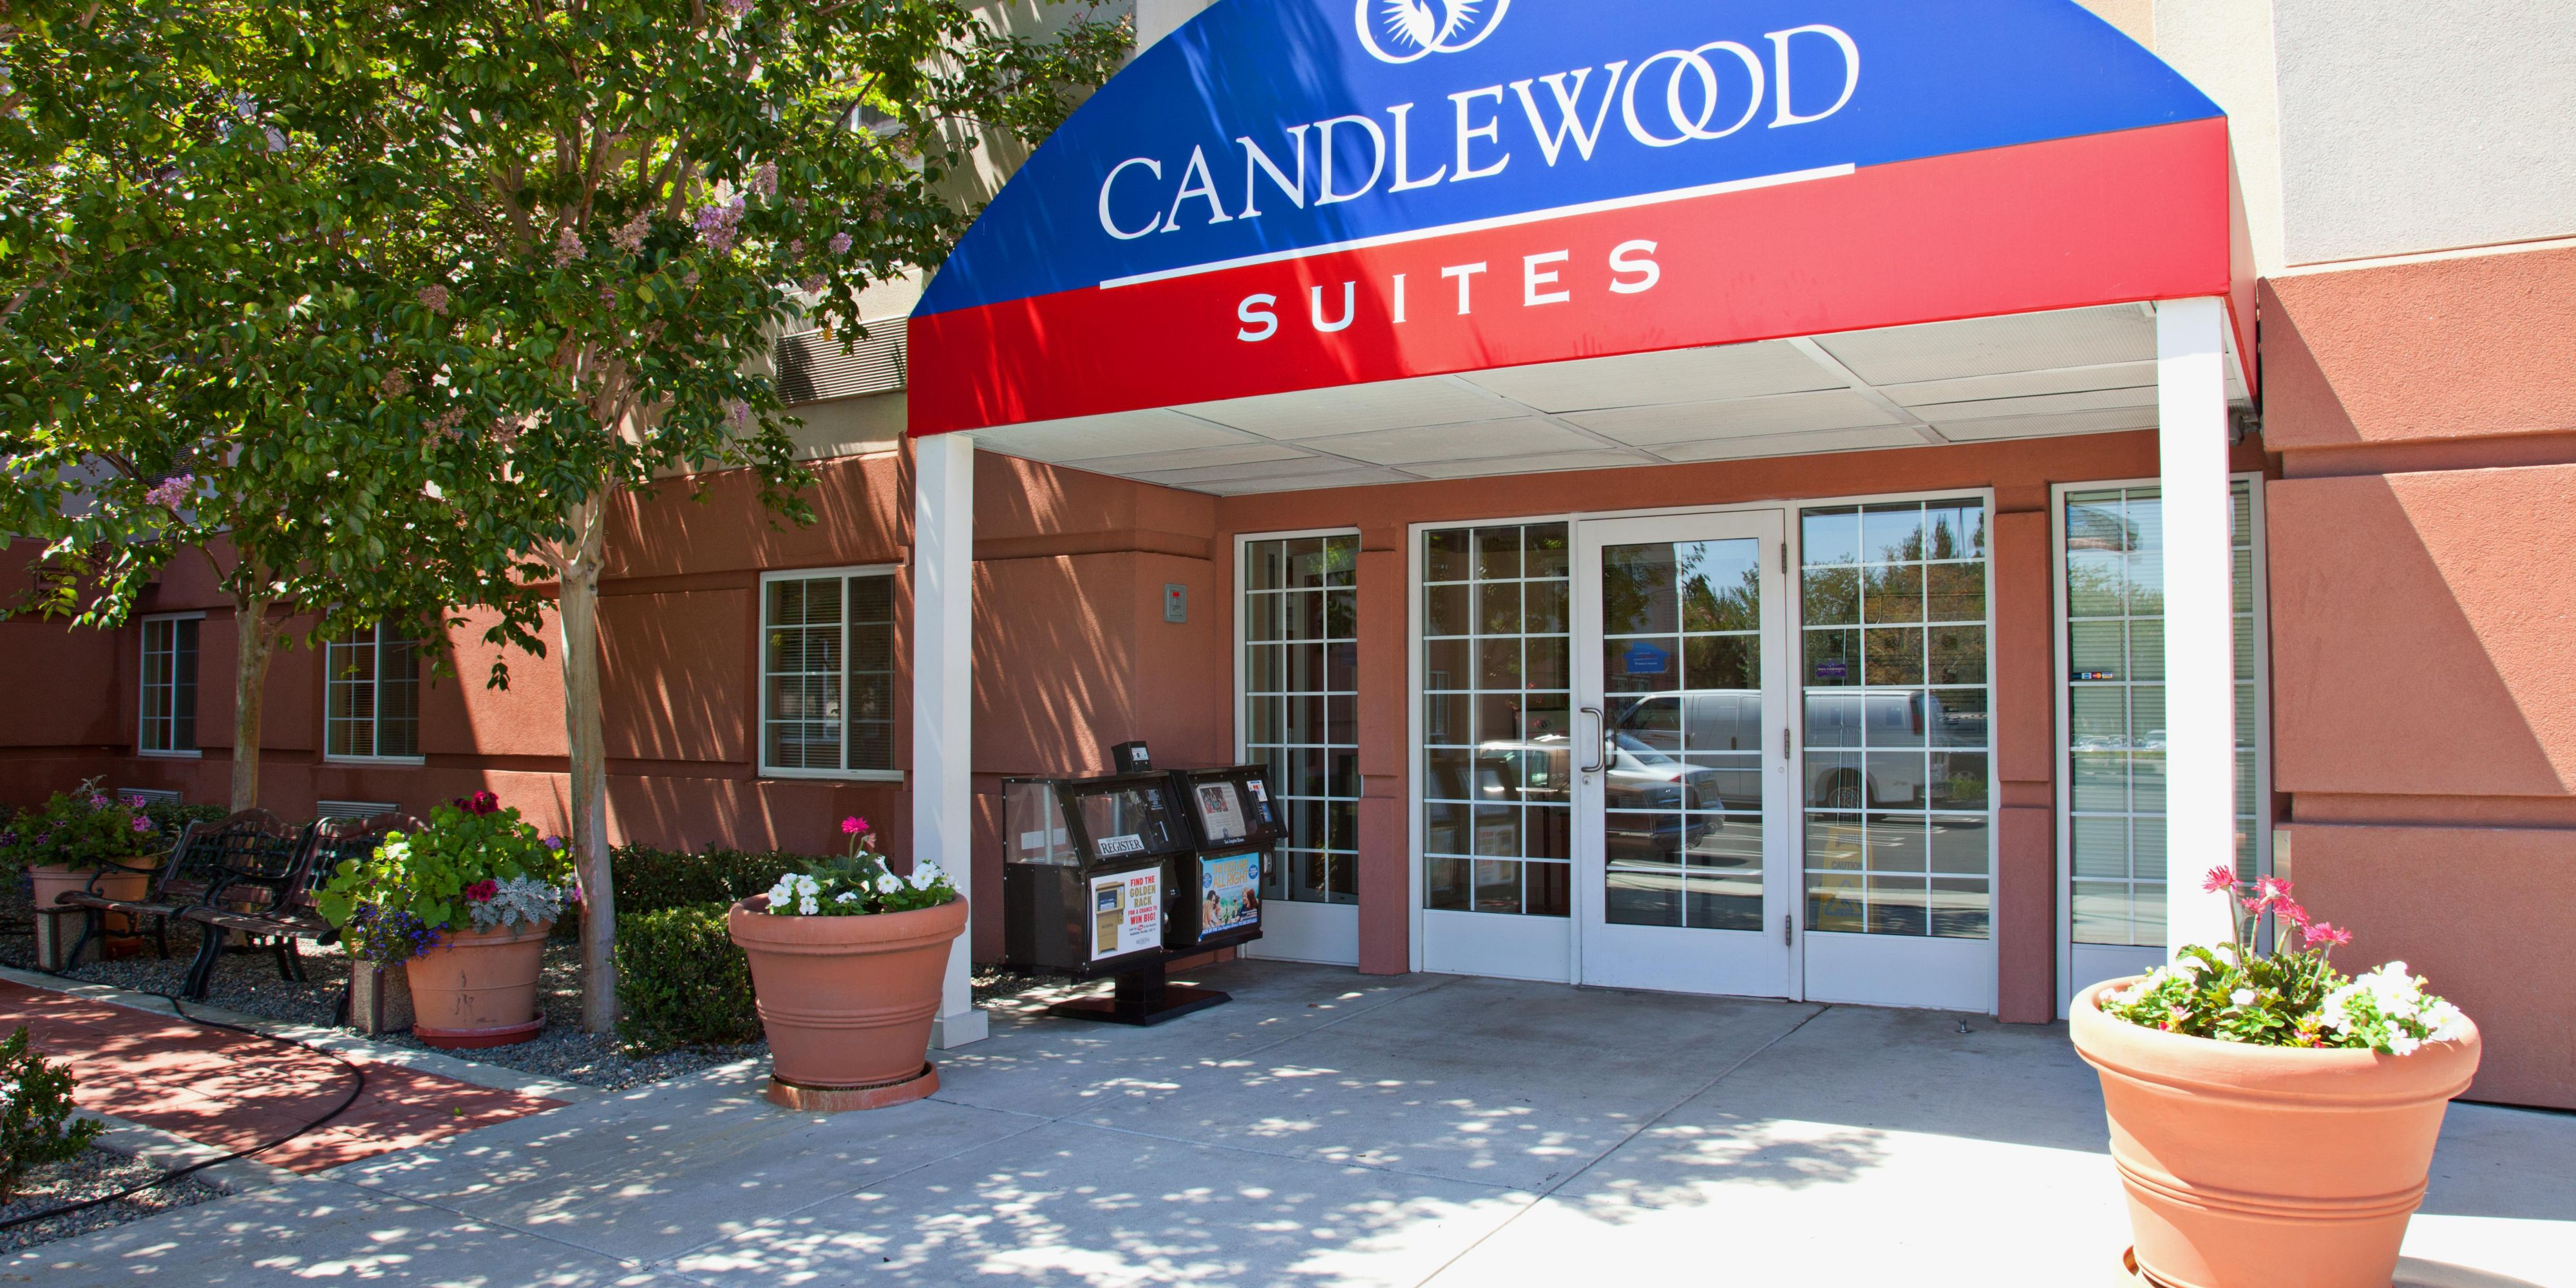 Extended Stay Candlewood Suites Front Entrance ...